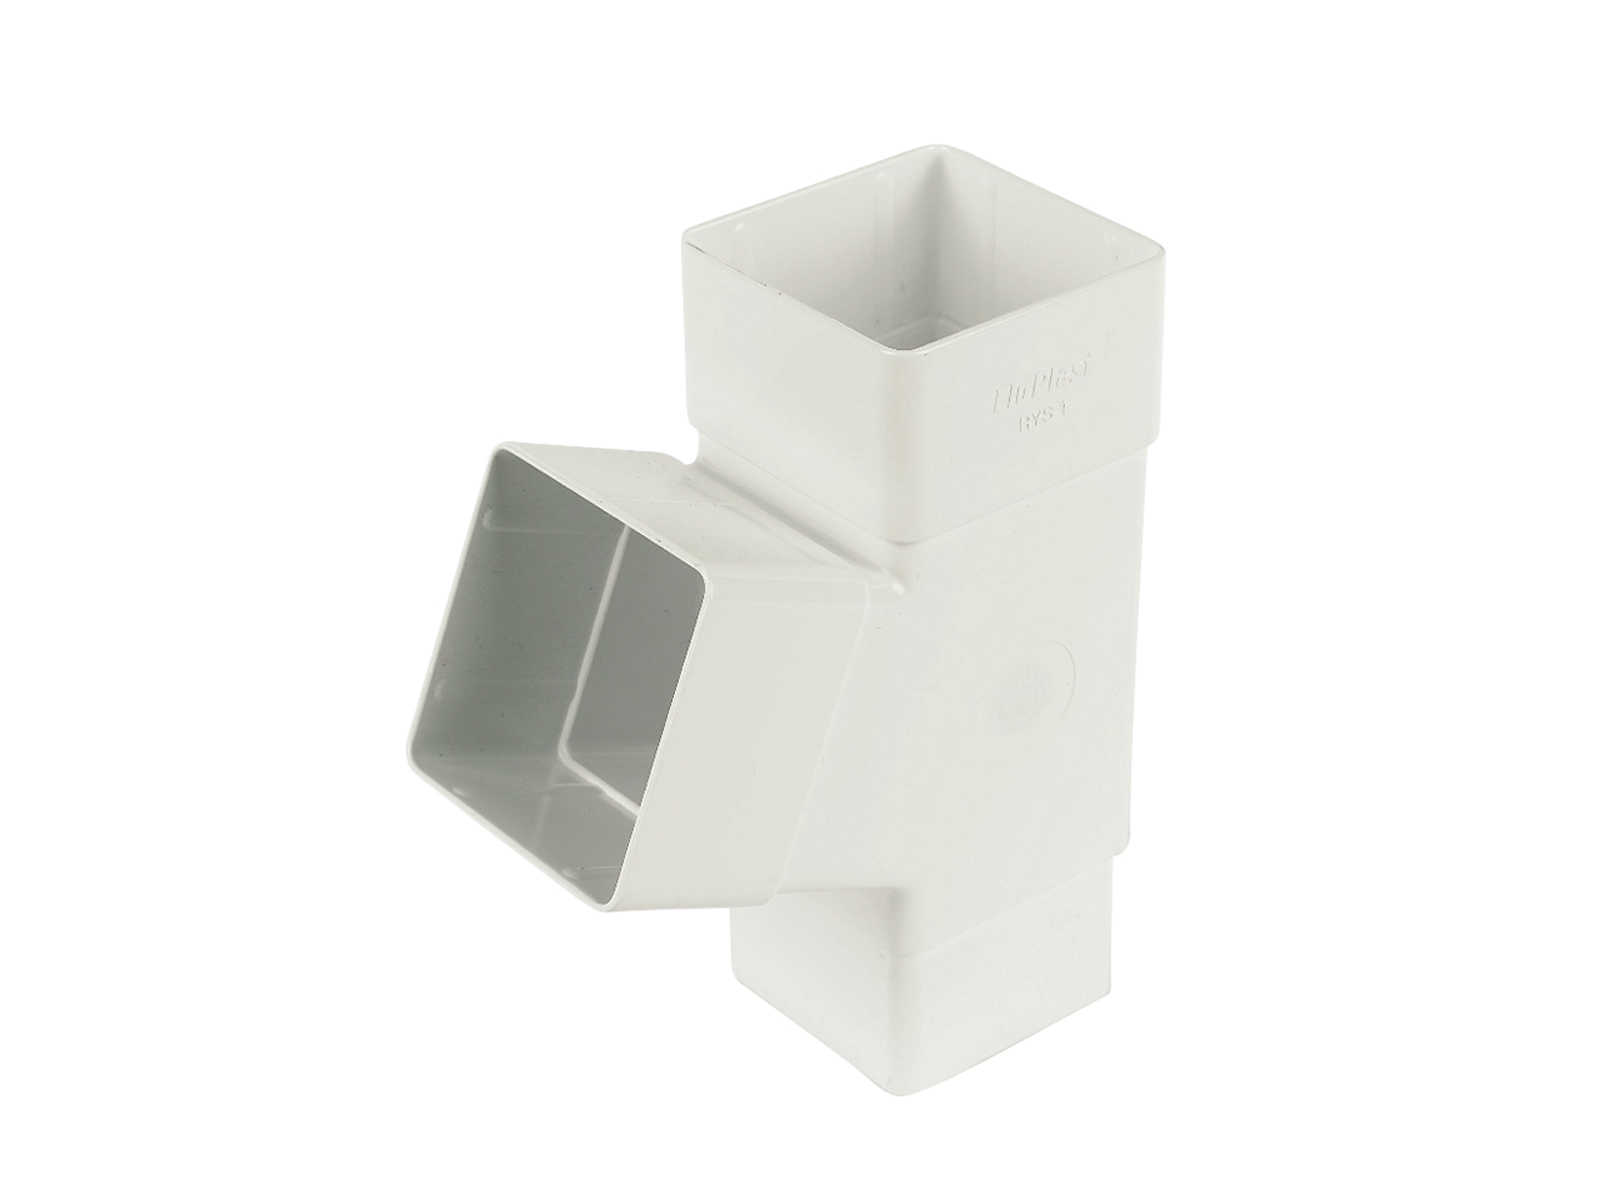 FLOPLAST RYS1WH 65MM SQUARE DOWNPIPE - 67.5